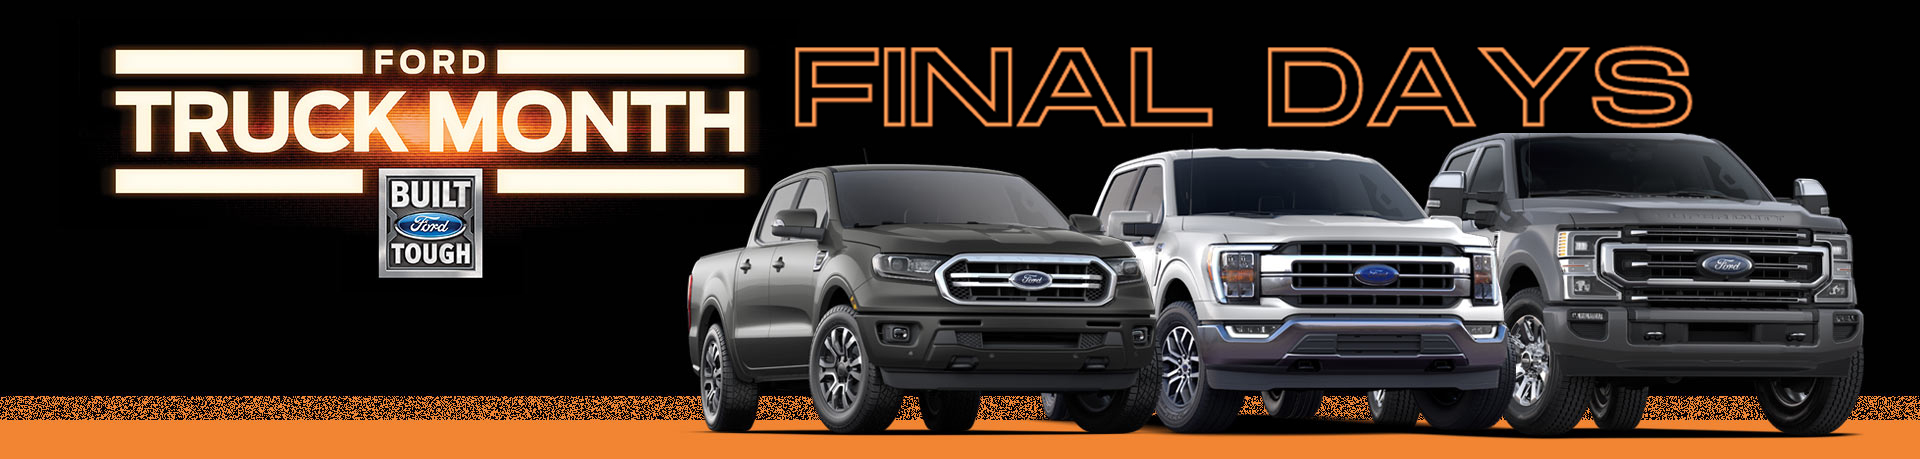 Doggett Ford New Dealership Truck Month Final Days